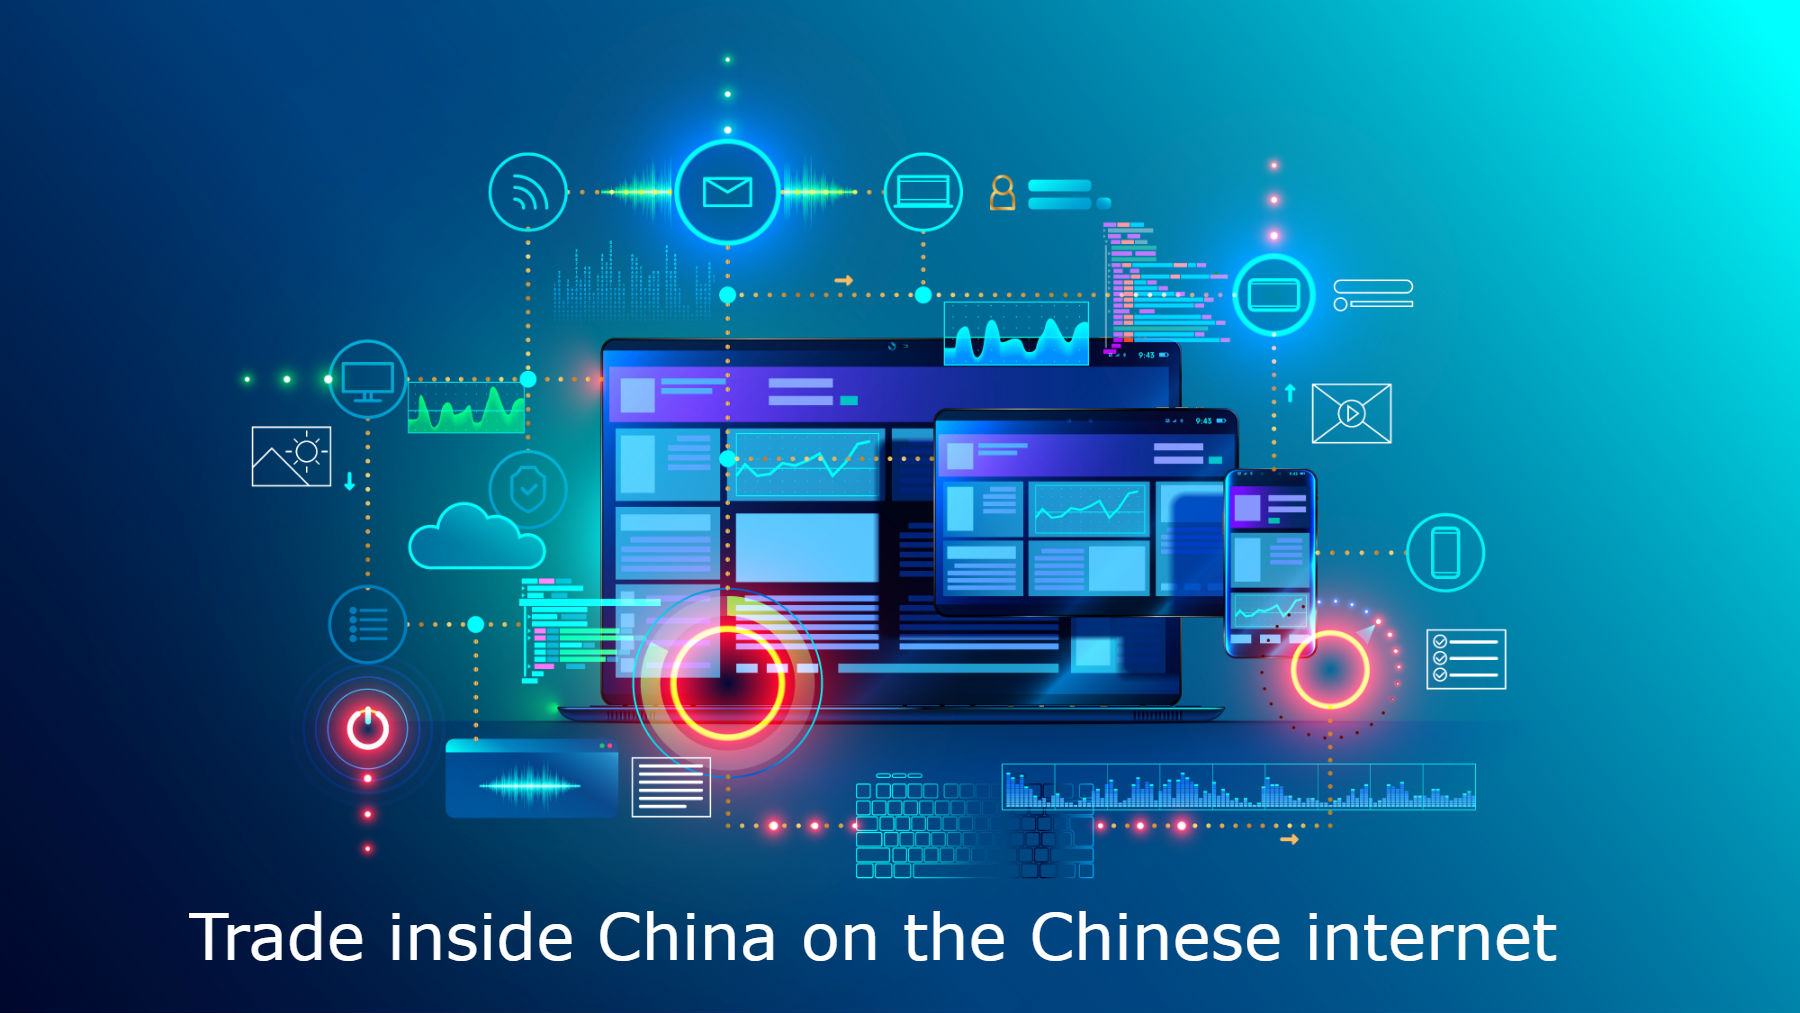 Trade inside China on the Chinese internet